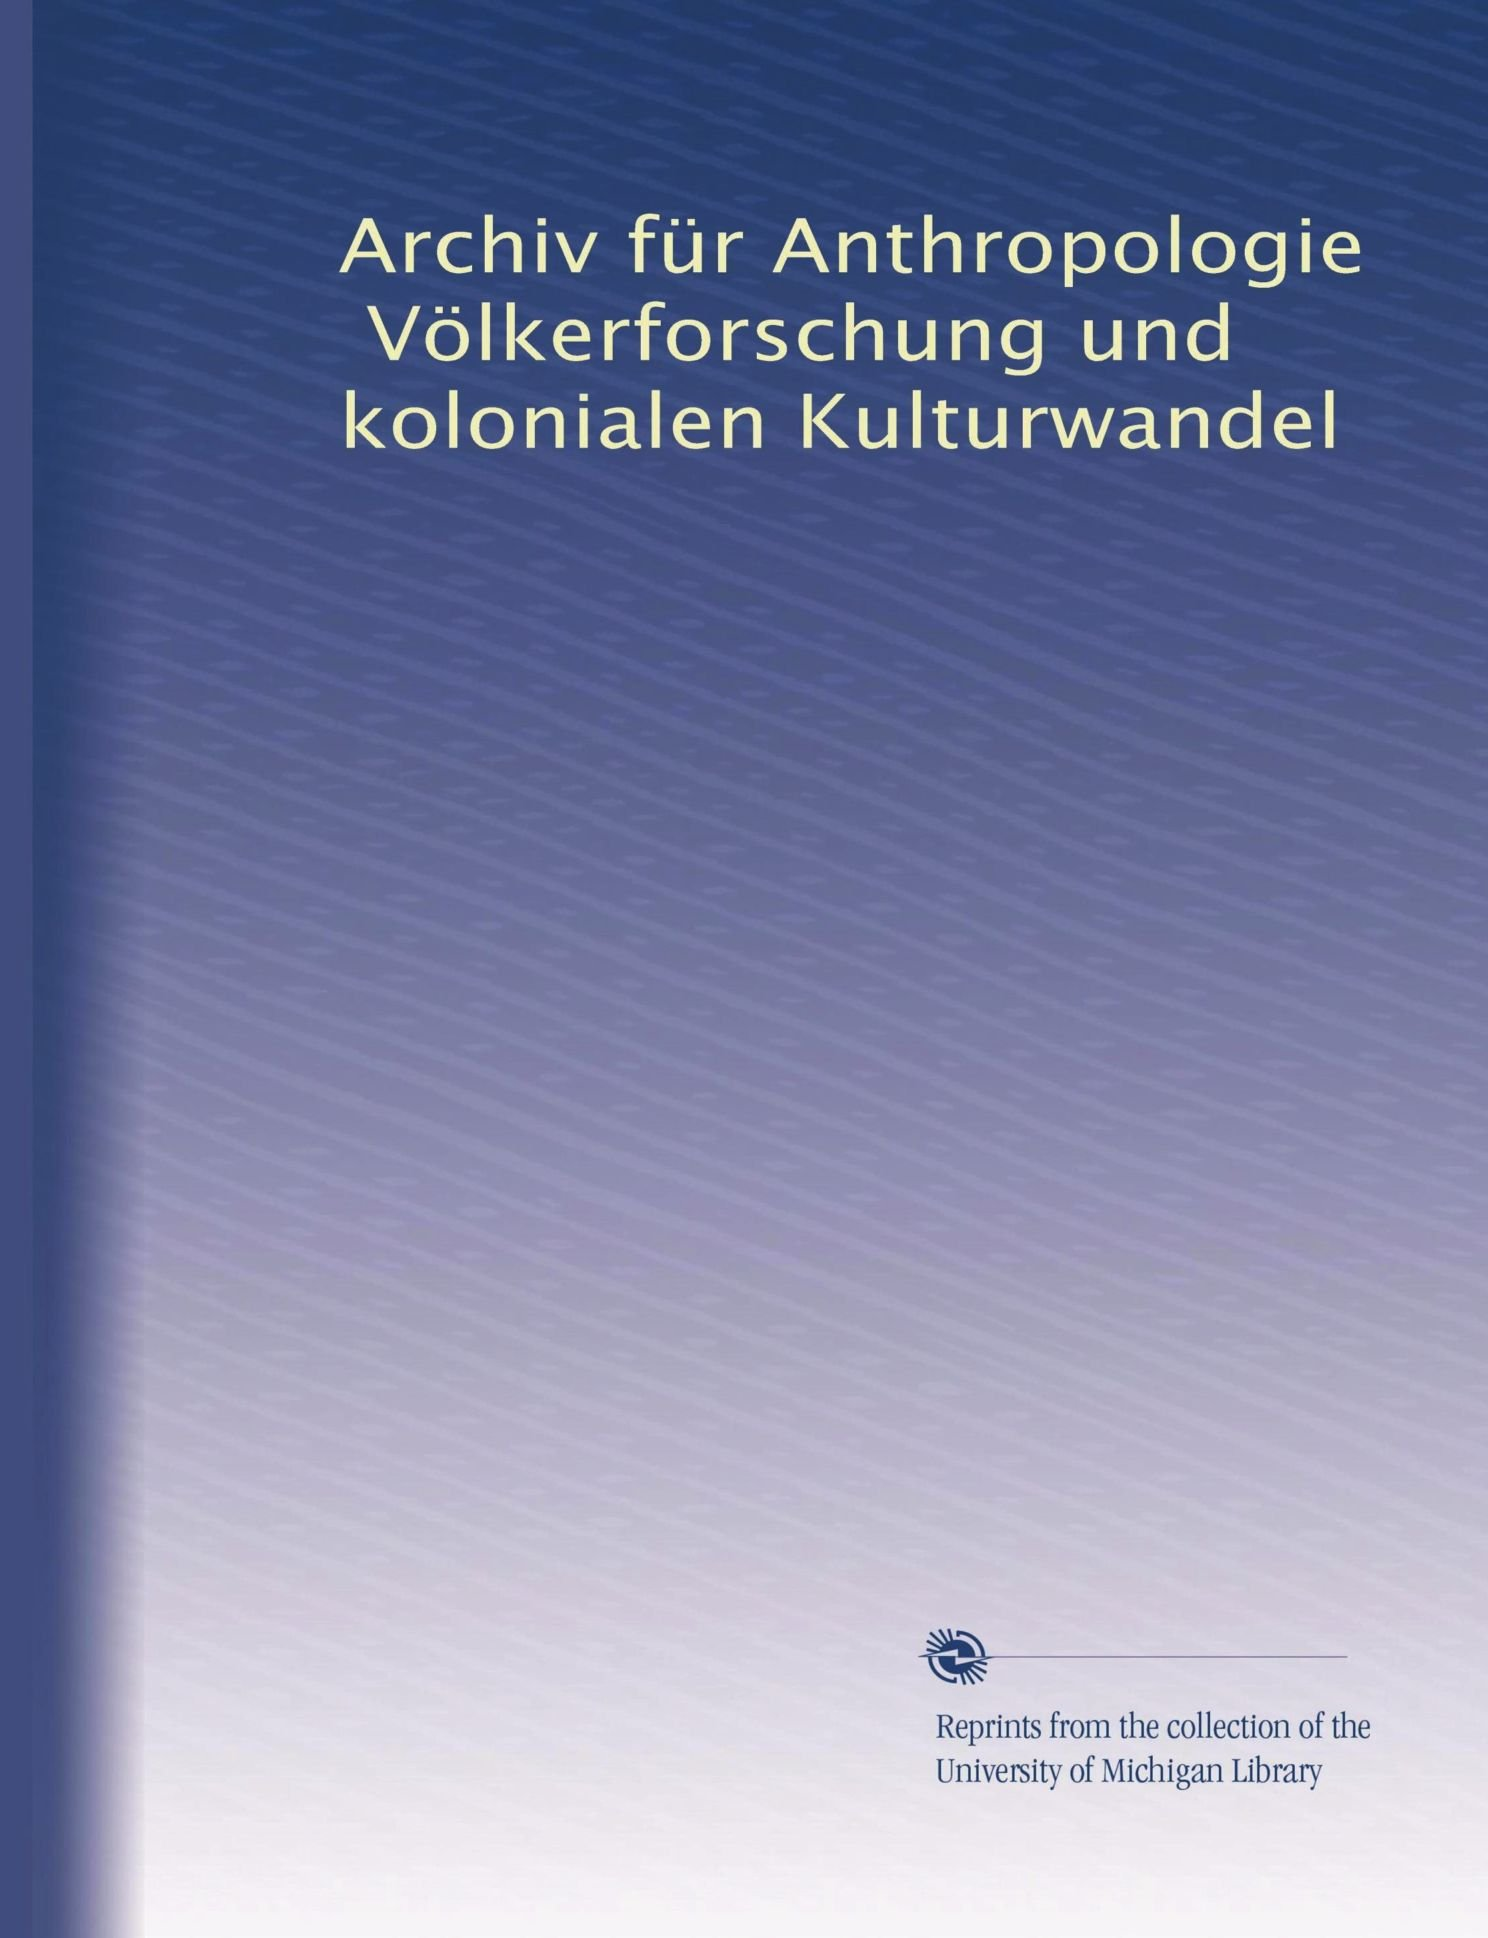 Download Archiv für Anthropologie, Völkerforschung und kolonialen Kulturwandel (Volume 20) (German Edition) pdf epub